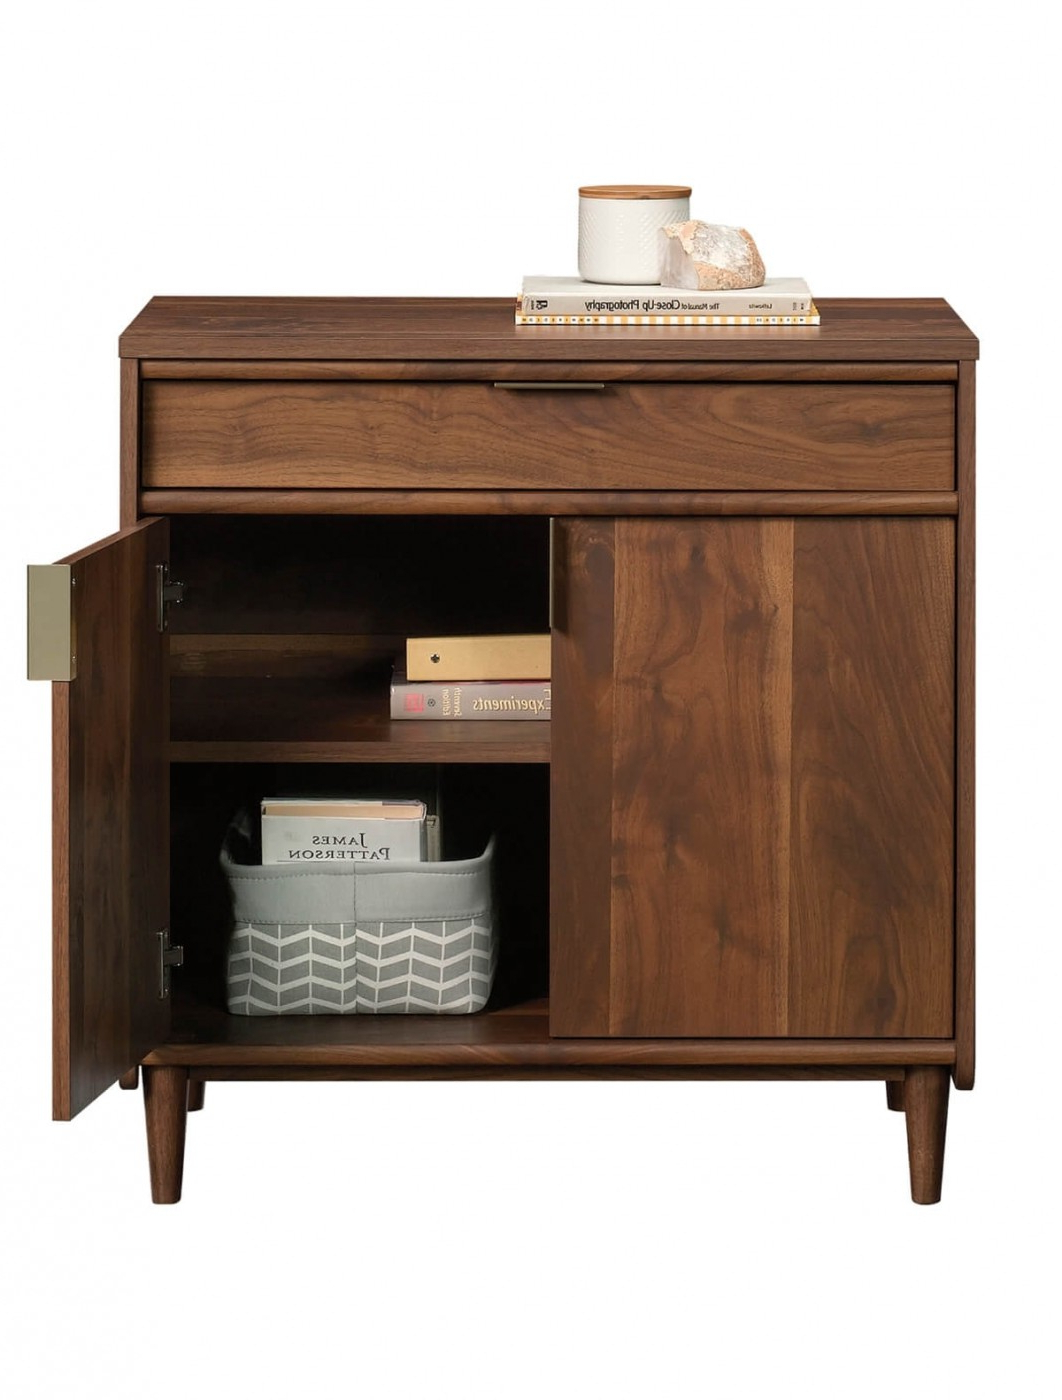 2020 Home Office Storage – Clifton Place Walnut Sideboard 5421115 Intended For Clifton Sideboards (Gallery 4 of 20)